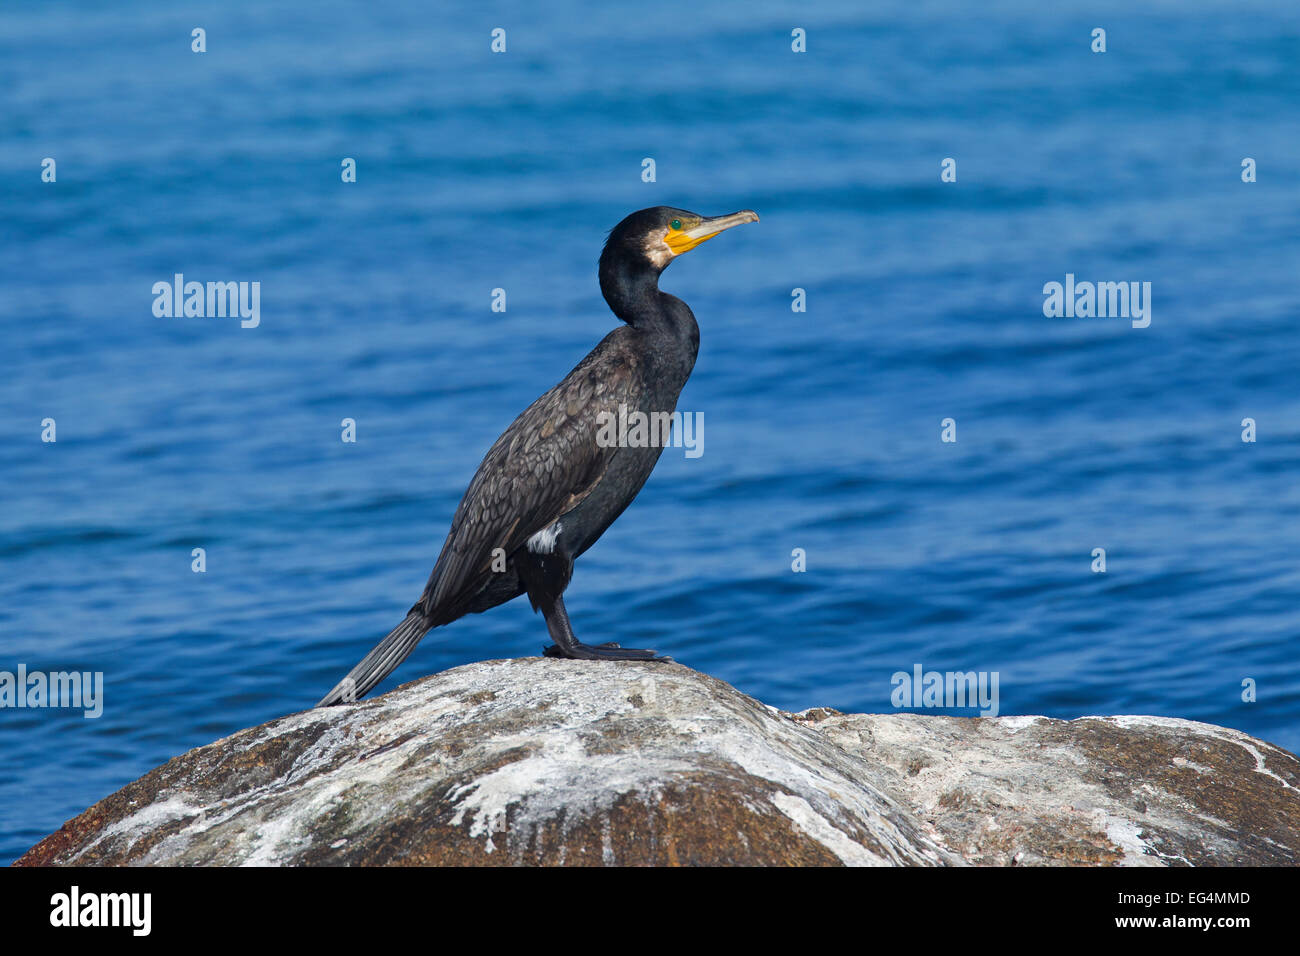 Great black cormorant (Phalacrocorax carbo) perched on rock covered in bird droppings at the sea coast - Stock Image